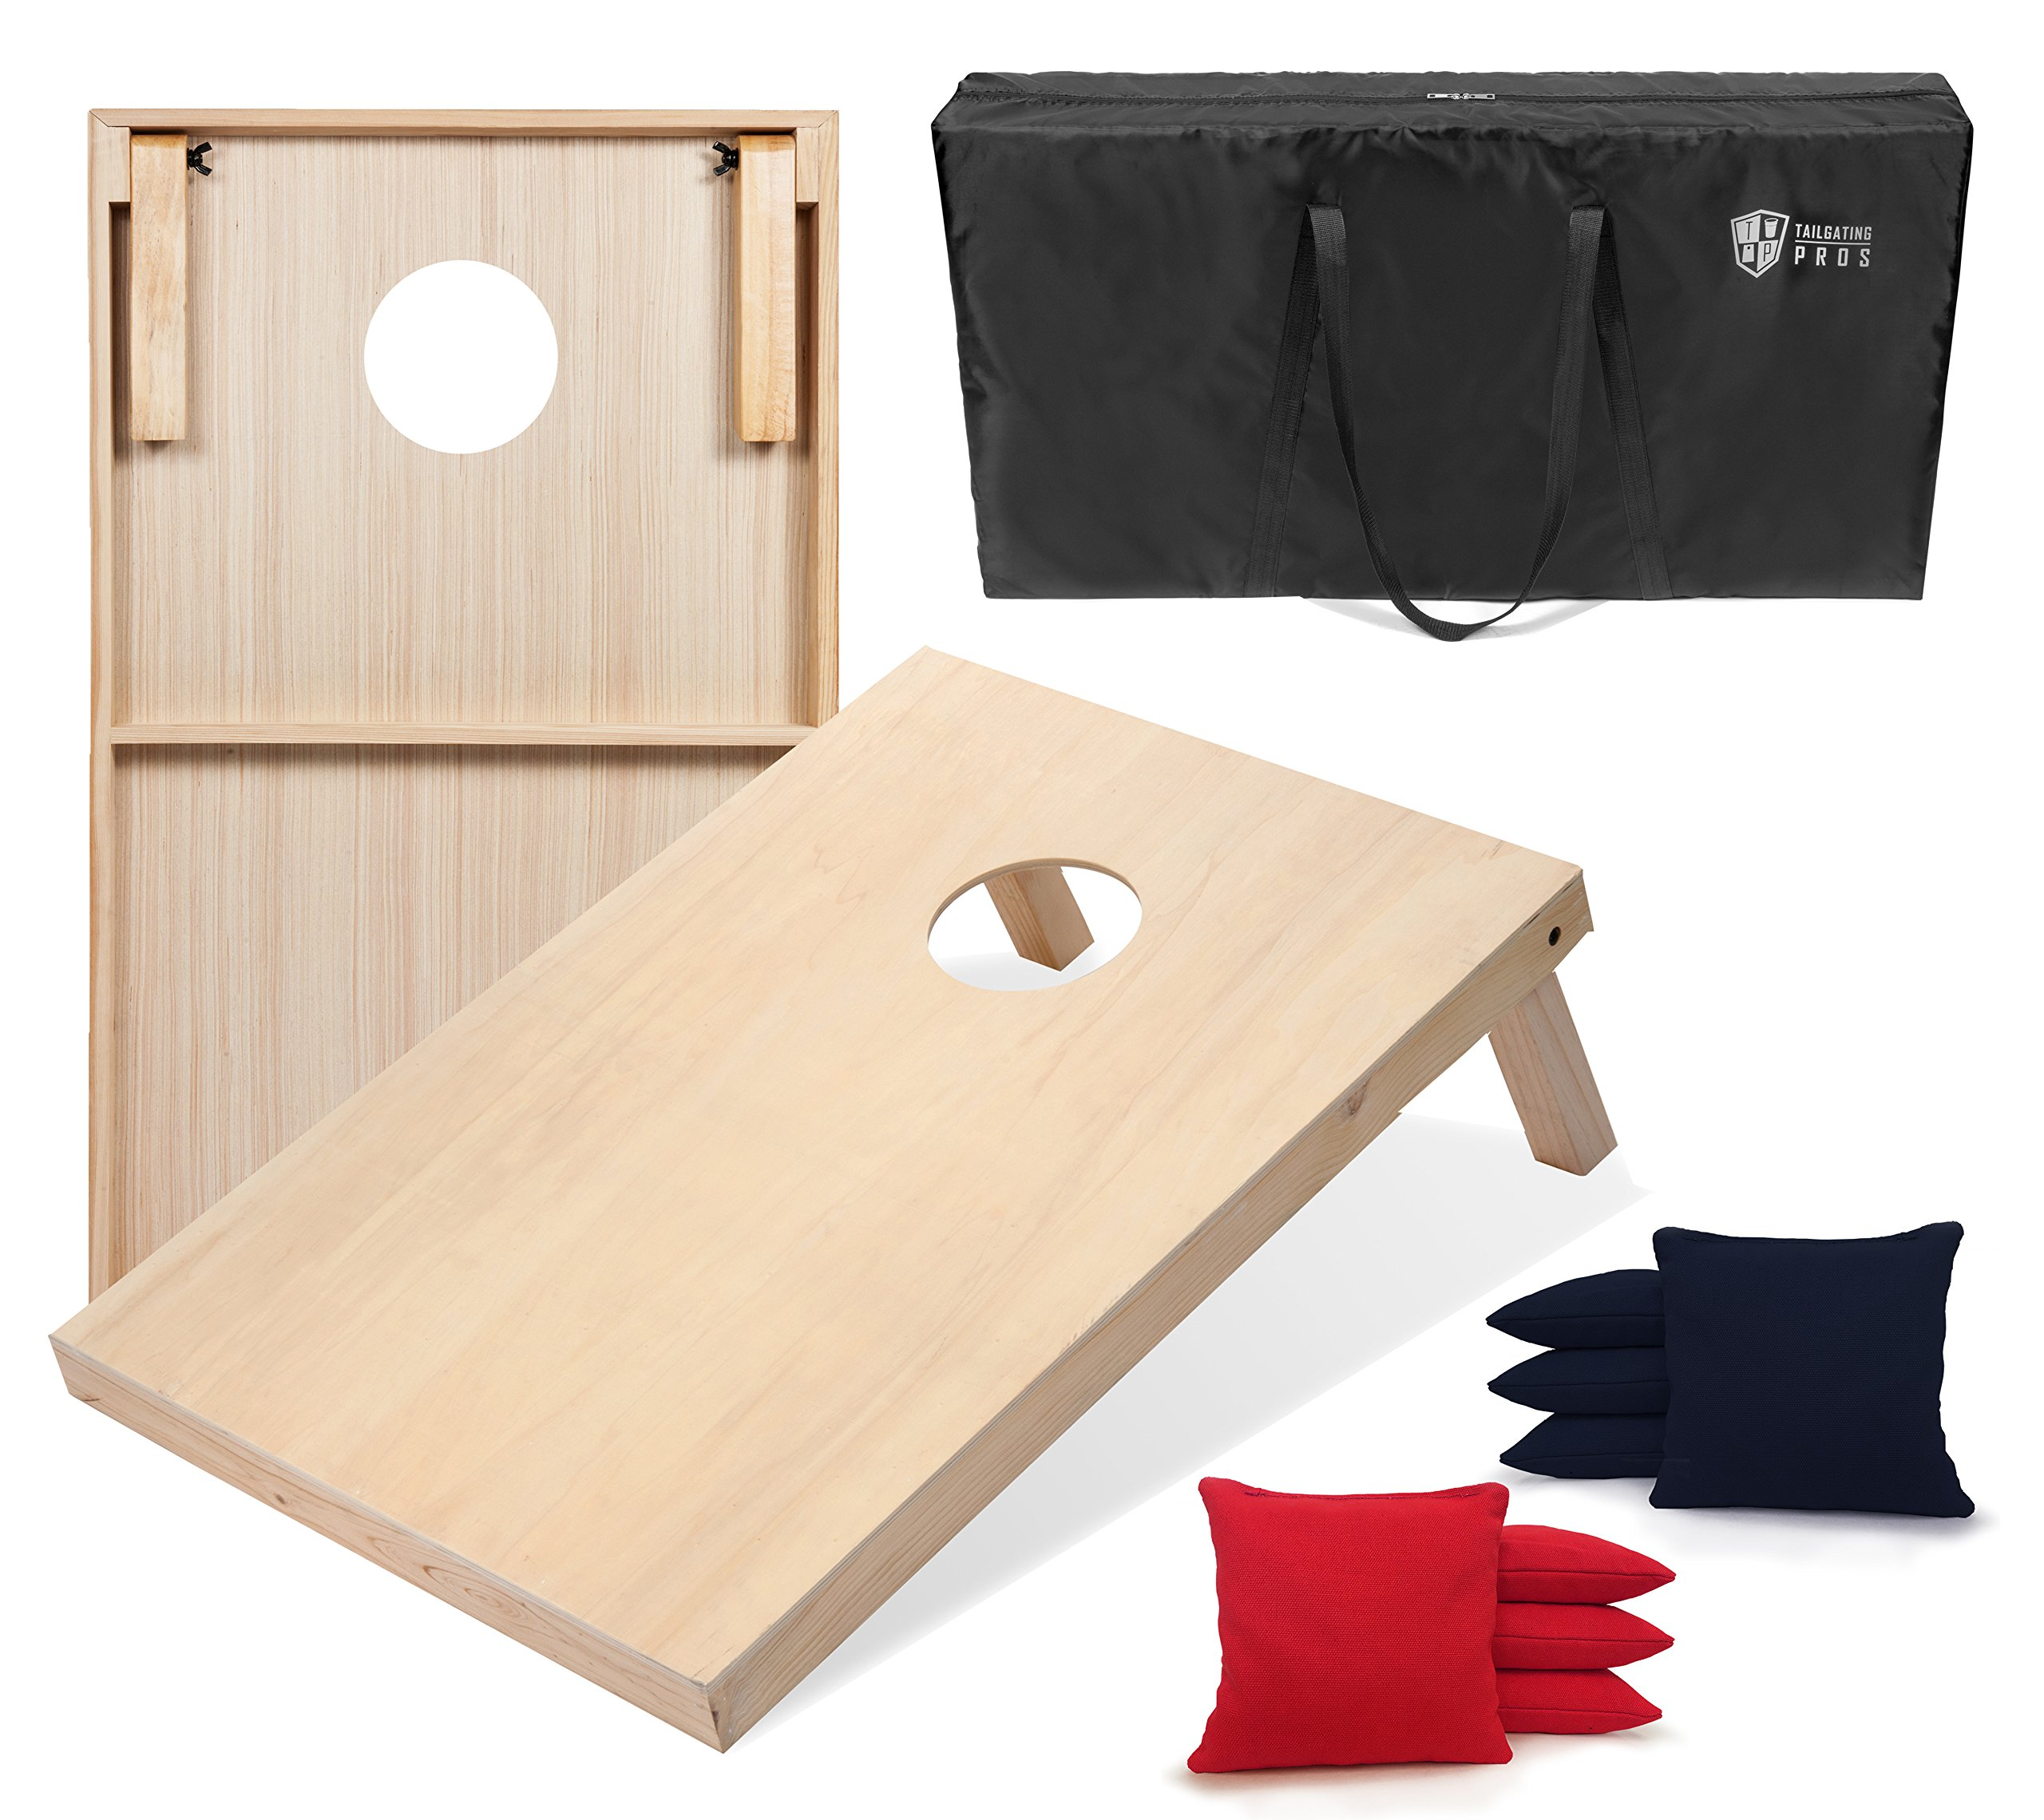 Tailgating Pros 4'x2' Cornhole Boards w/Carrying Case & Set of 8 Cornhole Bags (You Pick Color) 25 Bag Colors! (Red/Navy Blue, 3'x2' Boards) by Tailgating Pros